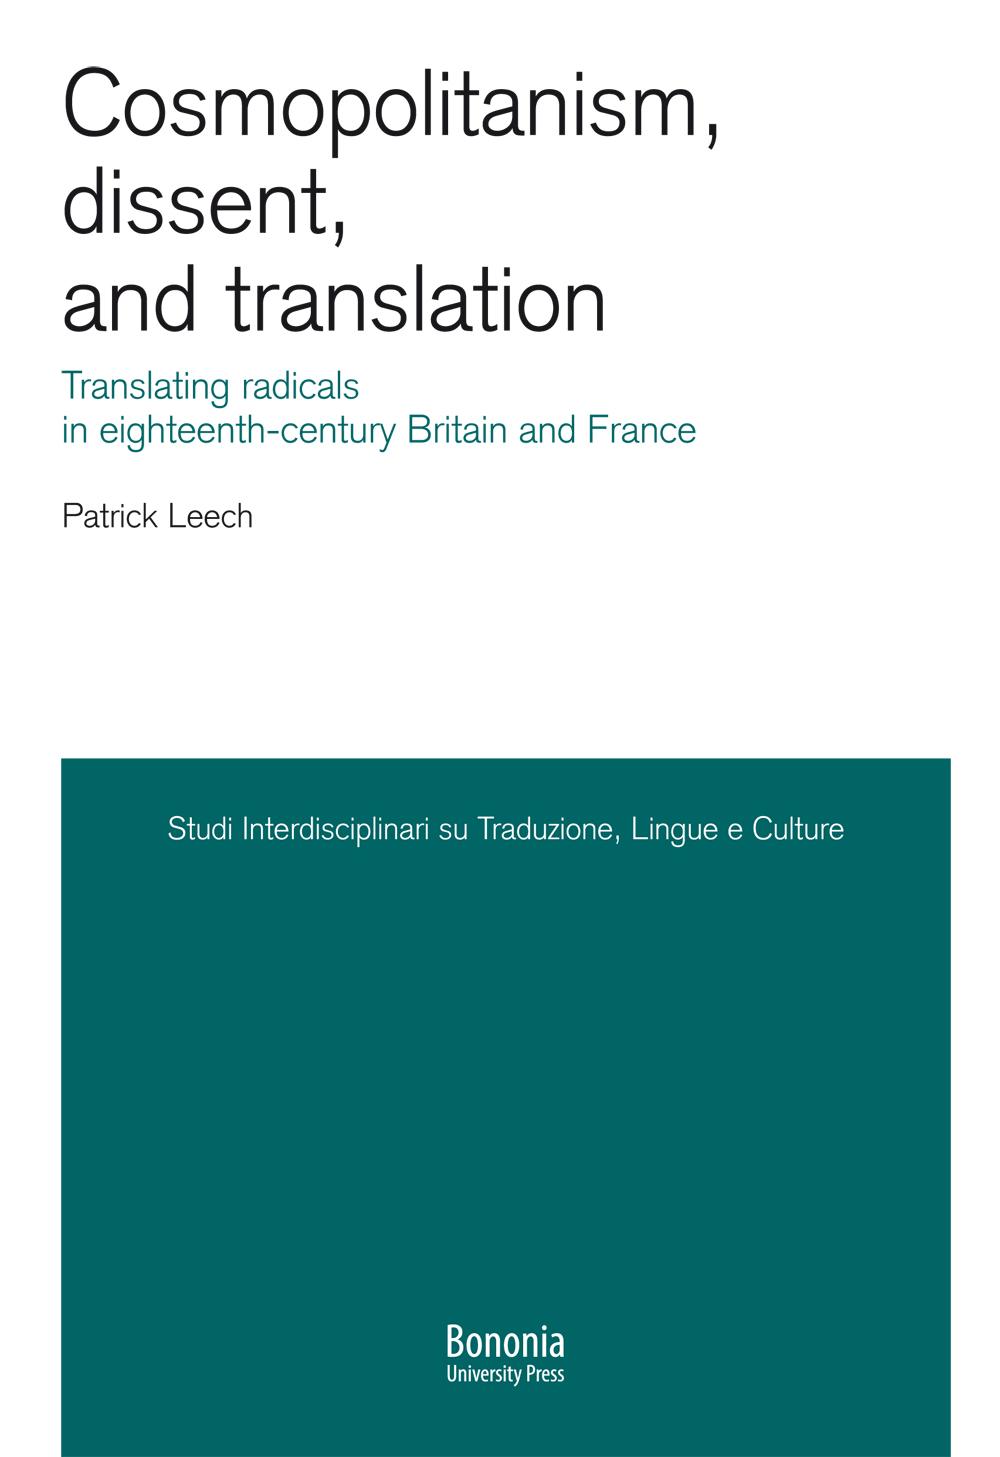 Cosmopolitanism, dissent, and translation - Bononia University Press